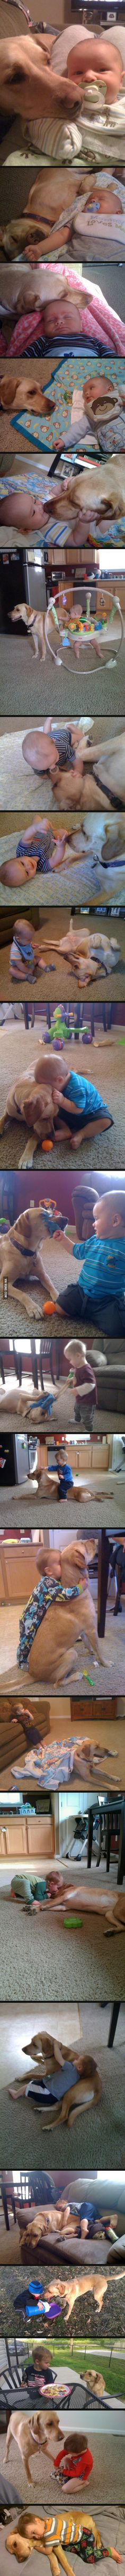 Best friends for 2 1/2 year. this is just too adorable